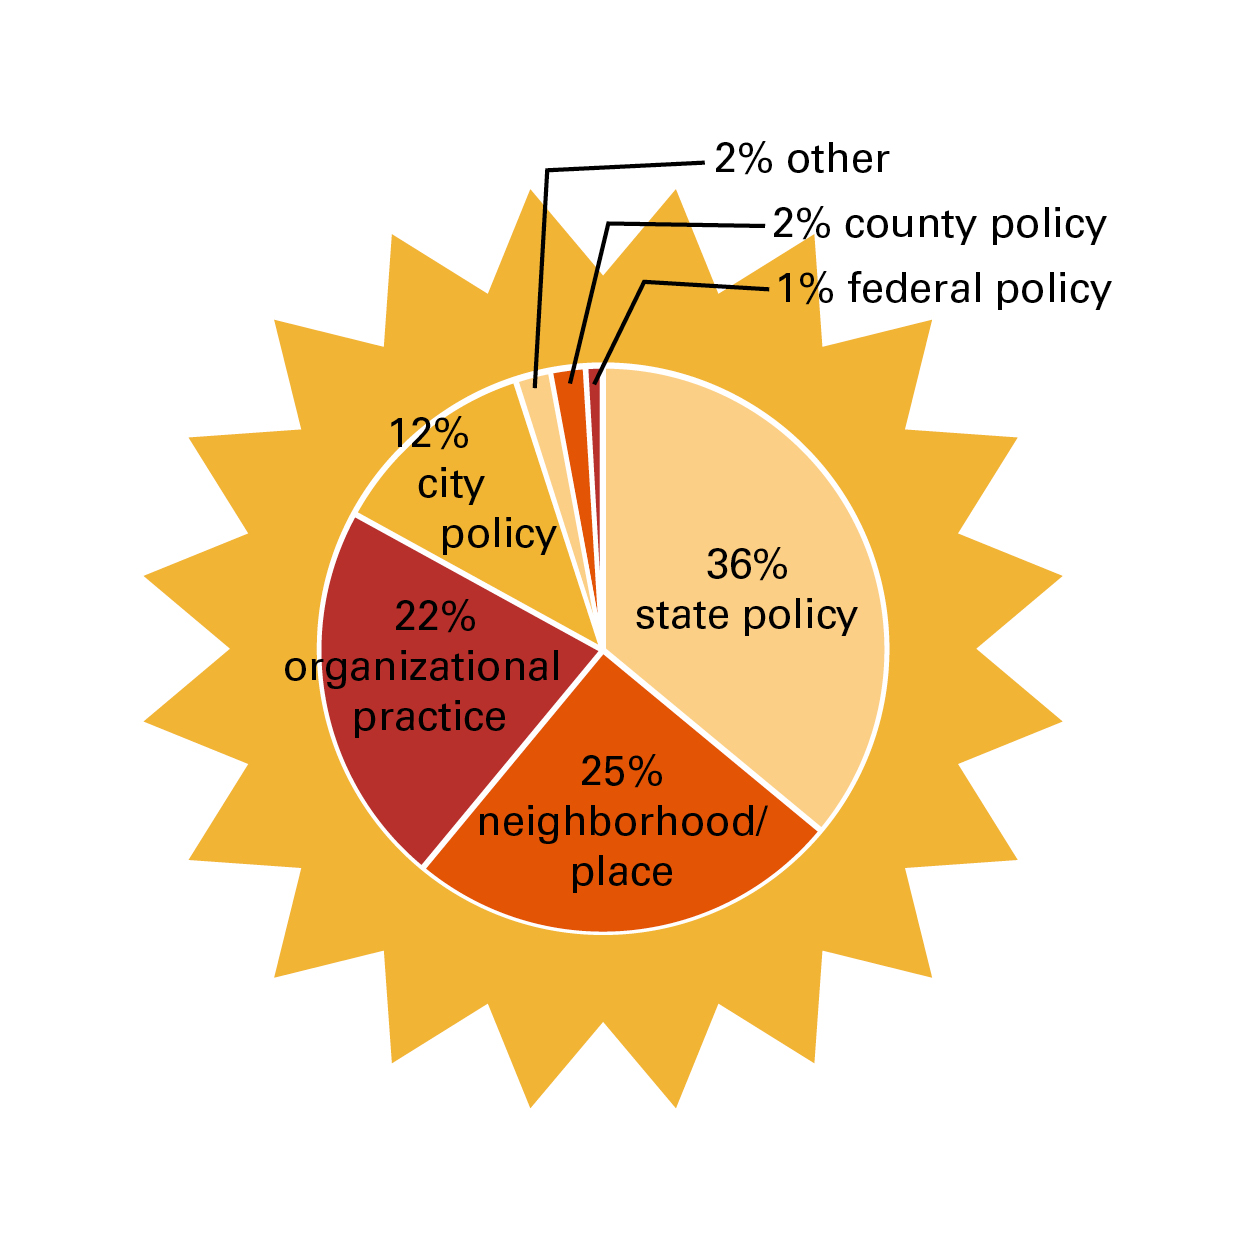 Pie Chart: 36% of system changes were to state policy, 25% to neighborhood/place, 22% to organizational practice, 12% to city policy, 2% to county policy, 1% to federal policy and 2% to other.